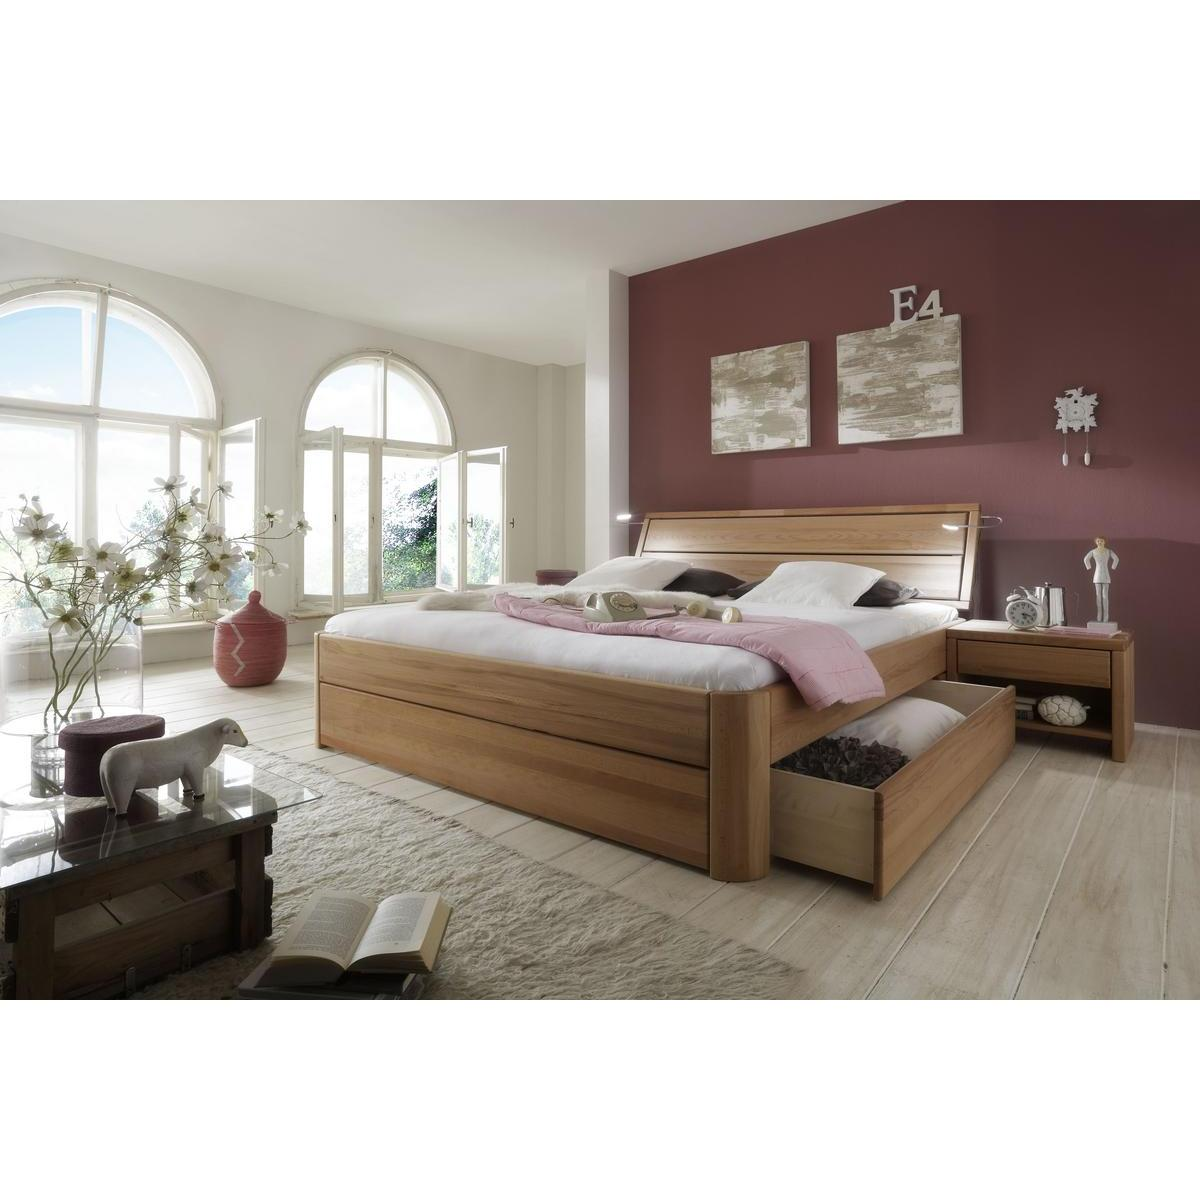 massivholz schubkastenbett 140x200 easy sleep kernbuche. Black Bedroom Furniture Sets. Home Design Ideas